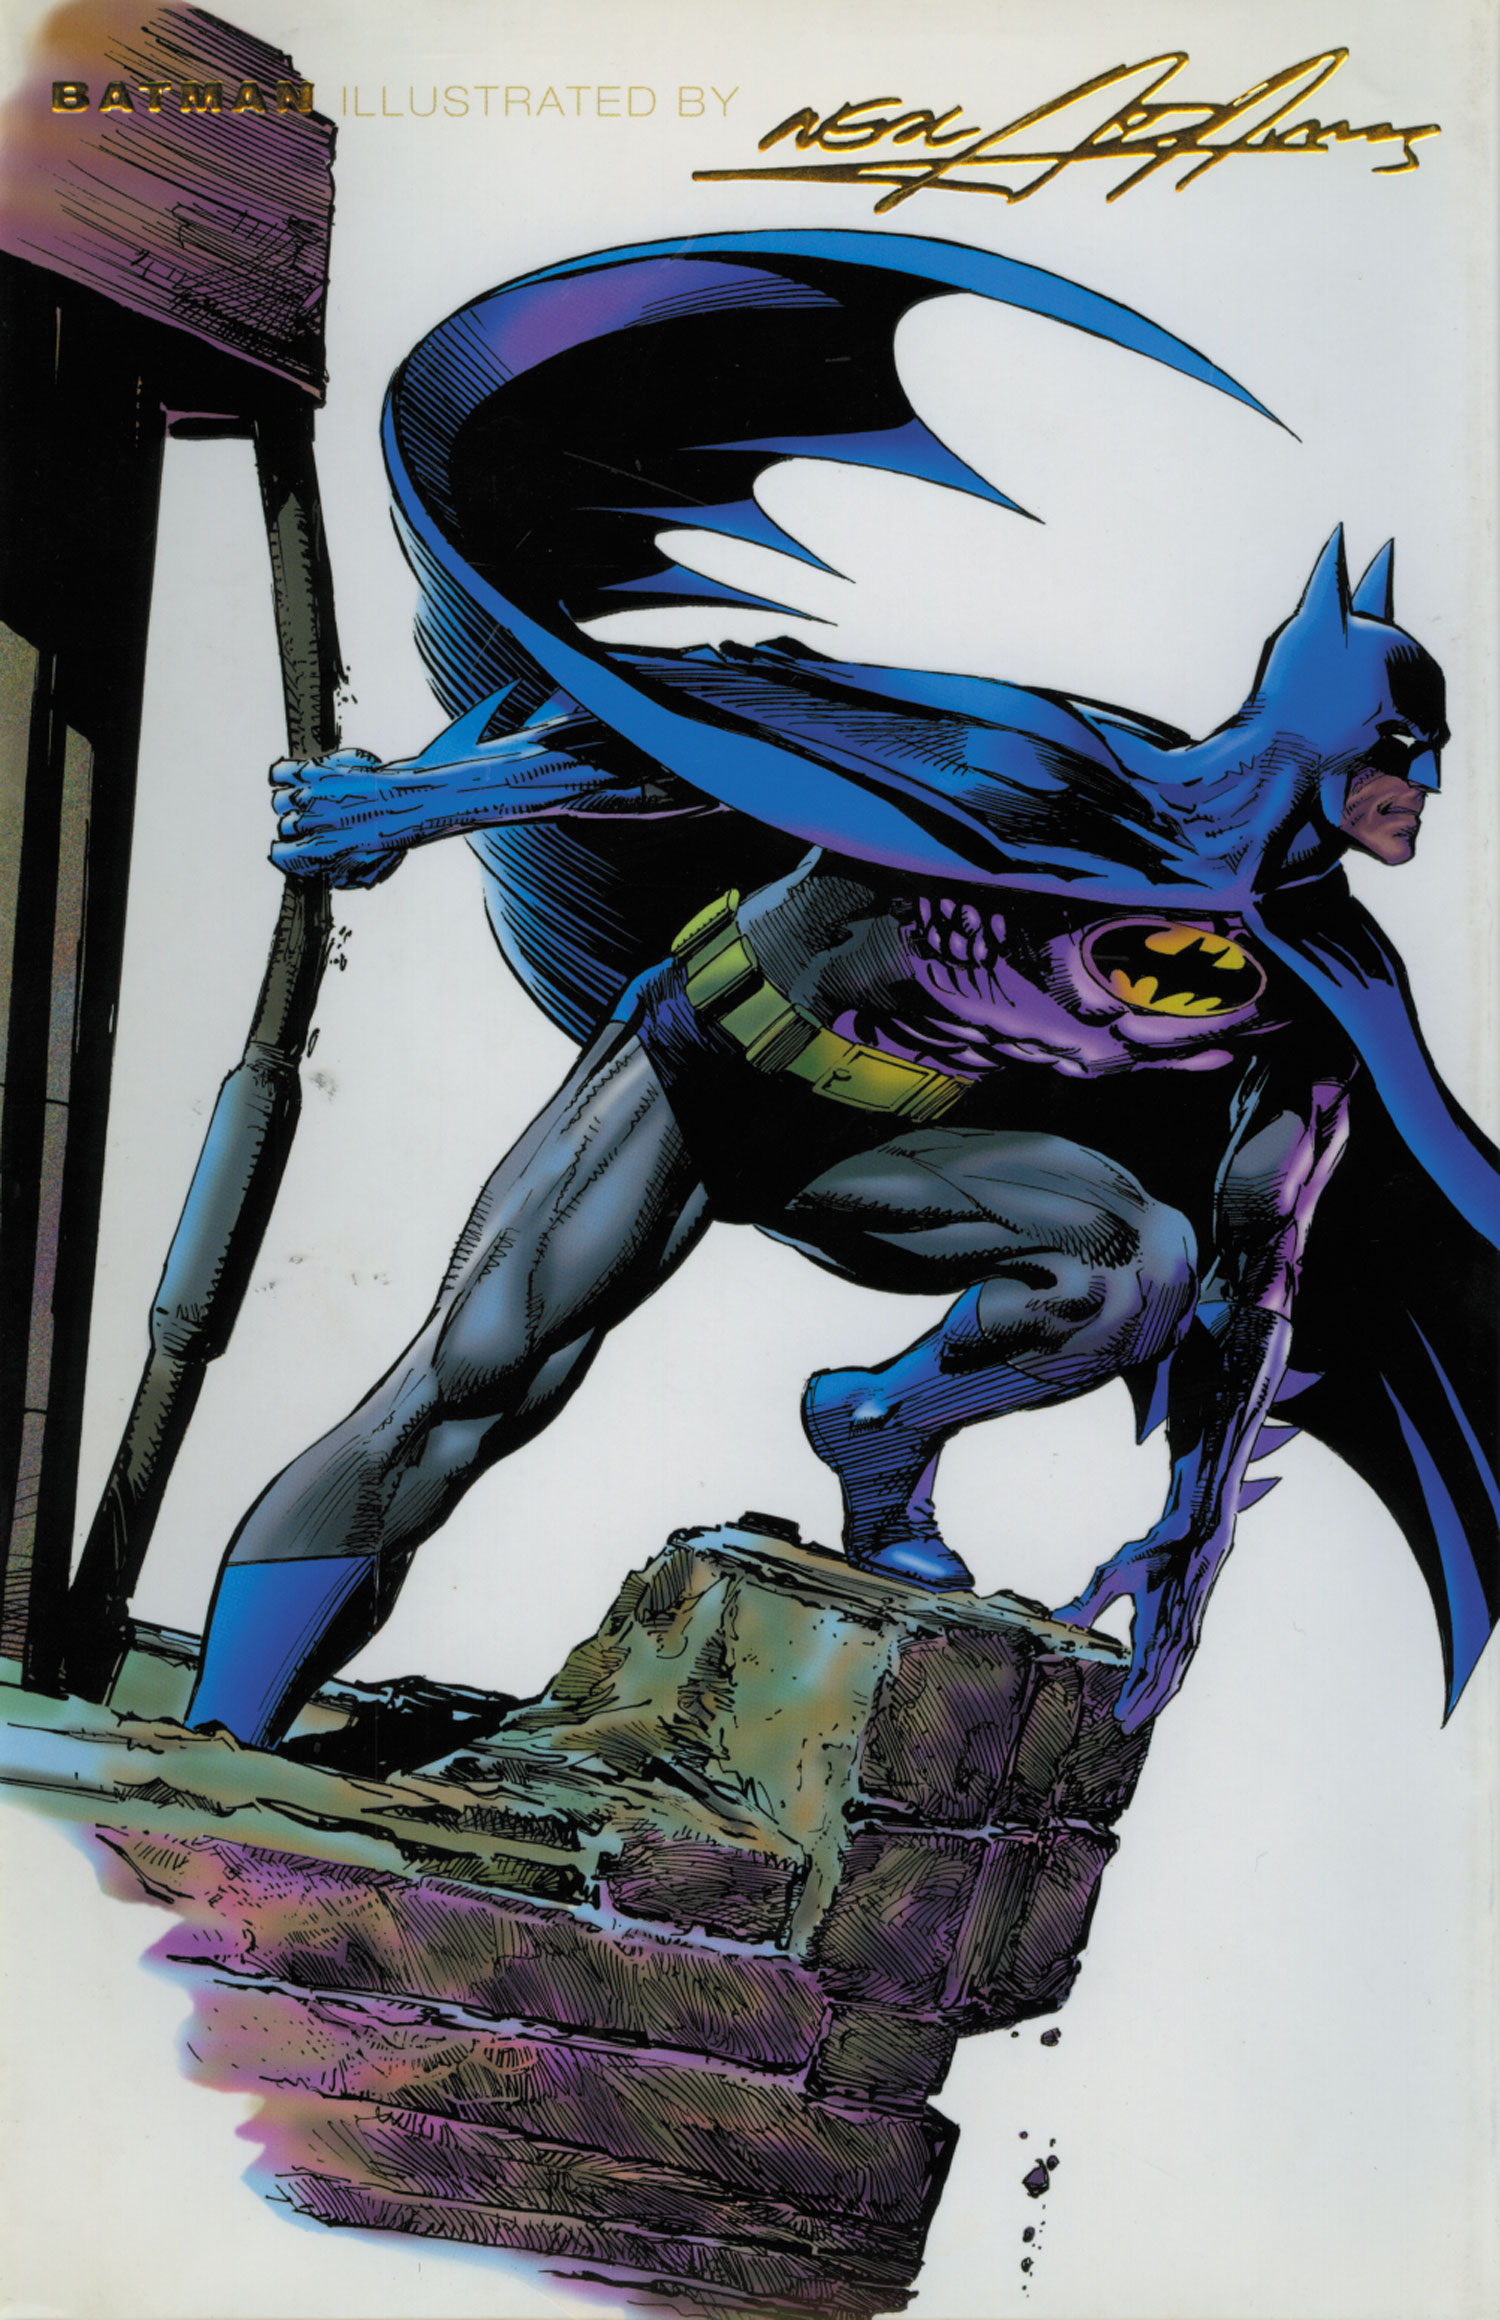 Batman Illustrated By Neal Adams Vol 3 Review Batman News